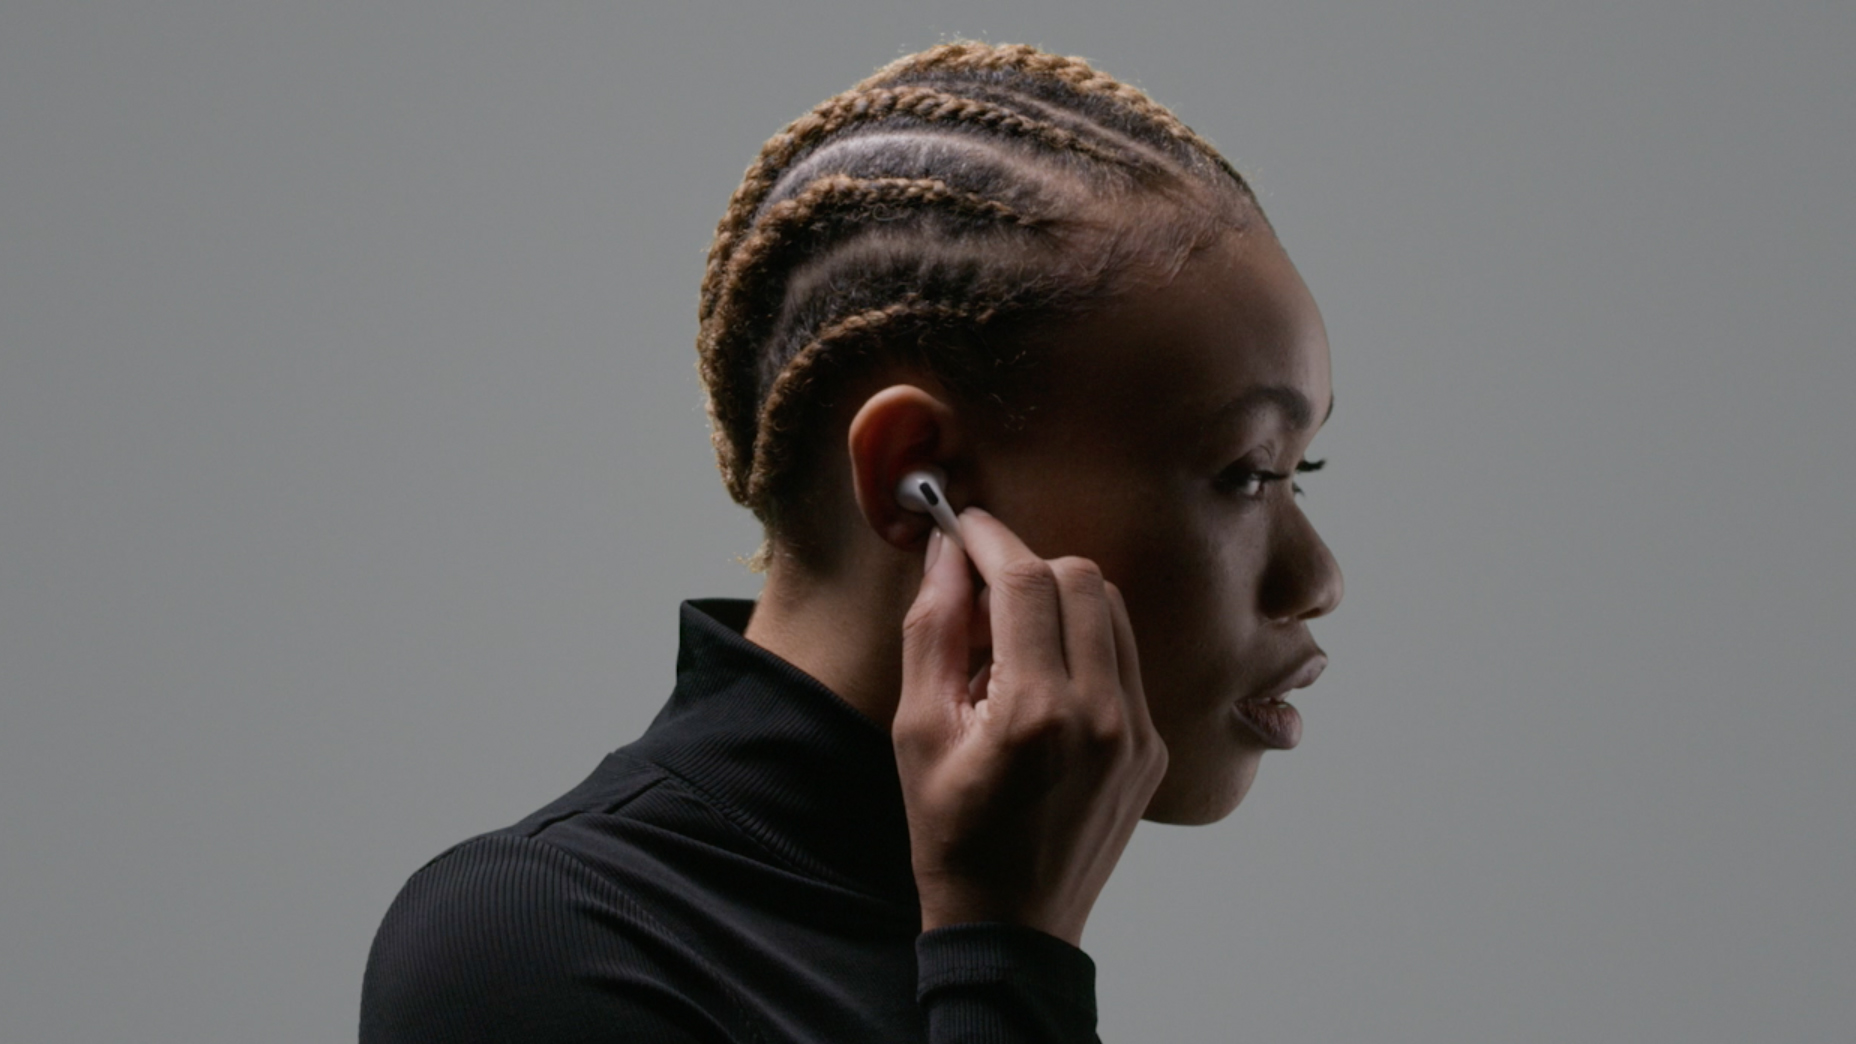 Apple S Airpods Pro The Earbuds Fitness Fans Have Been Waiting